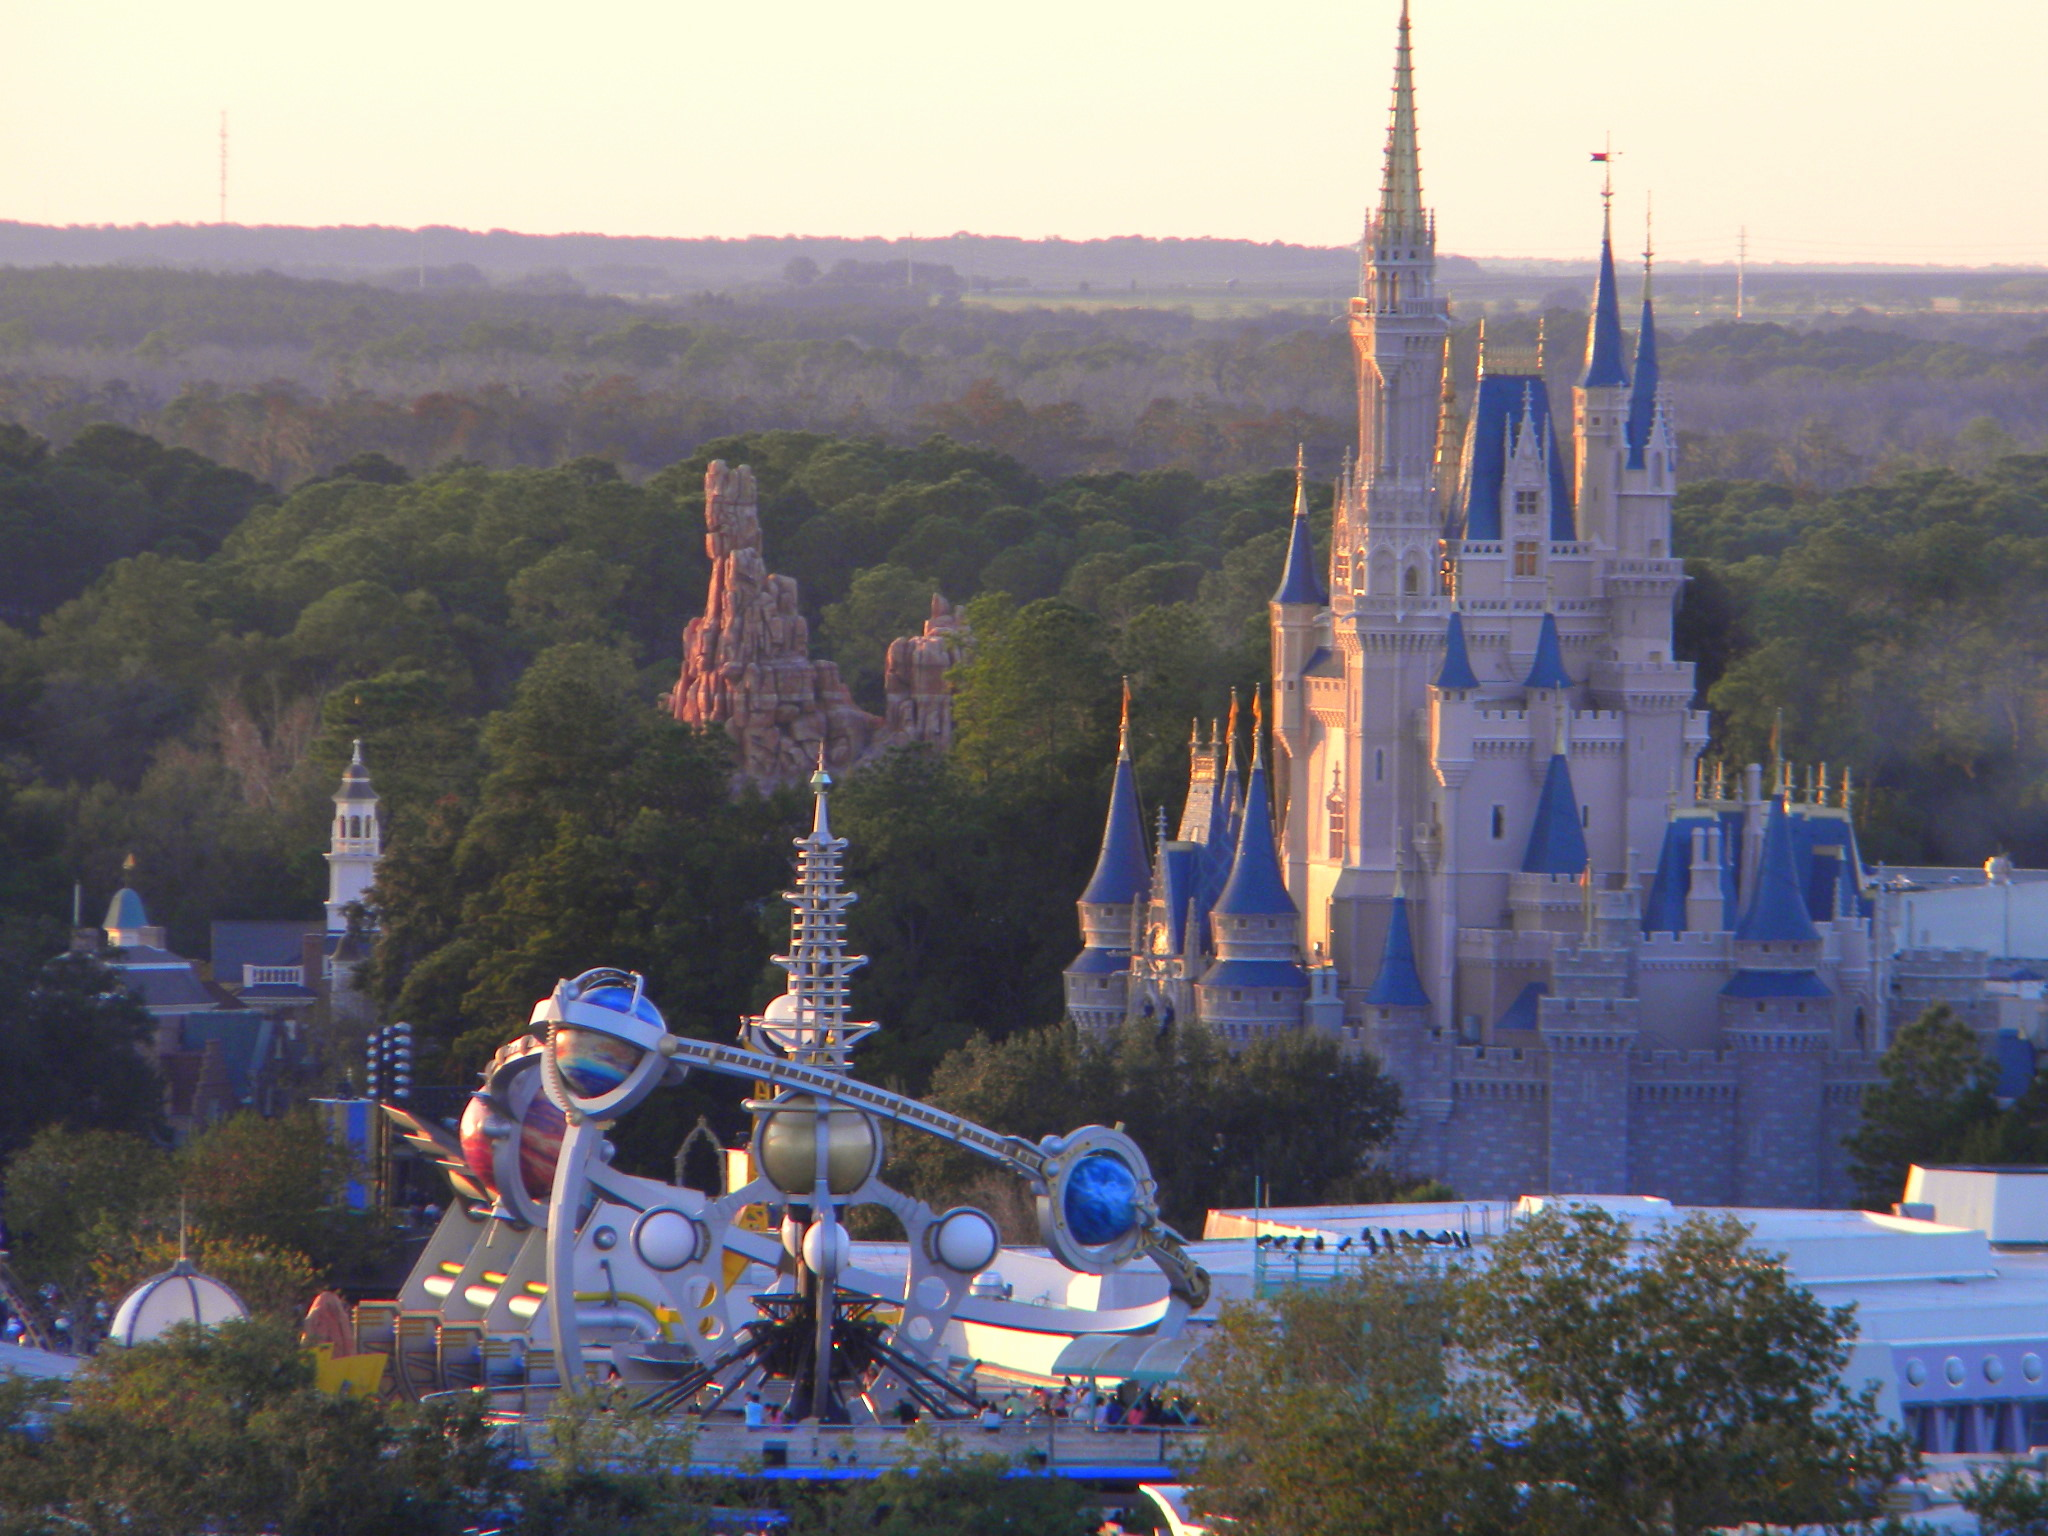 Tomorrowland, Disney's Astro Orbiter, Disney rides, the Magic Kingdom, Cinderella Castle